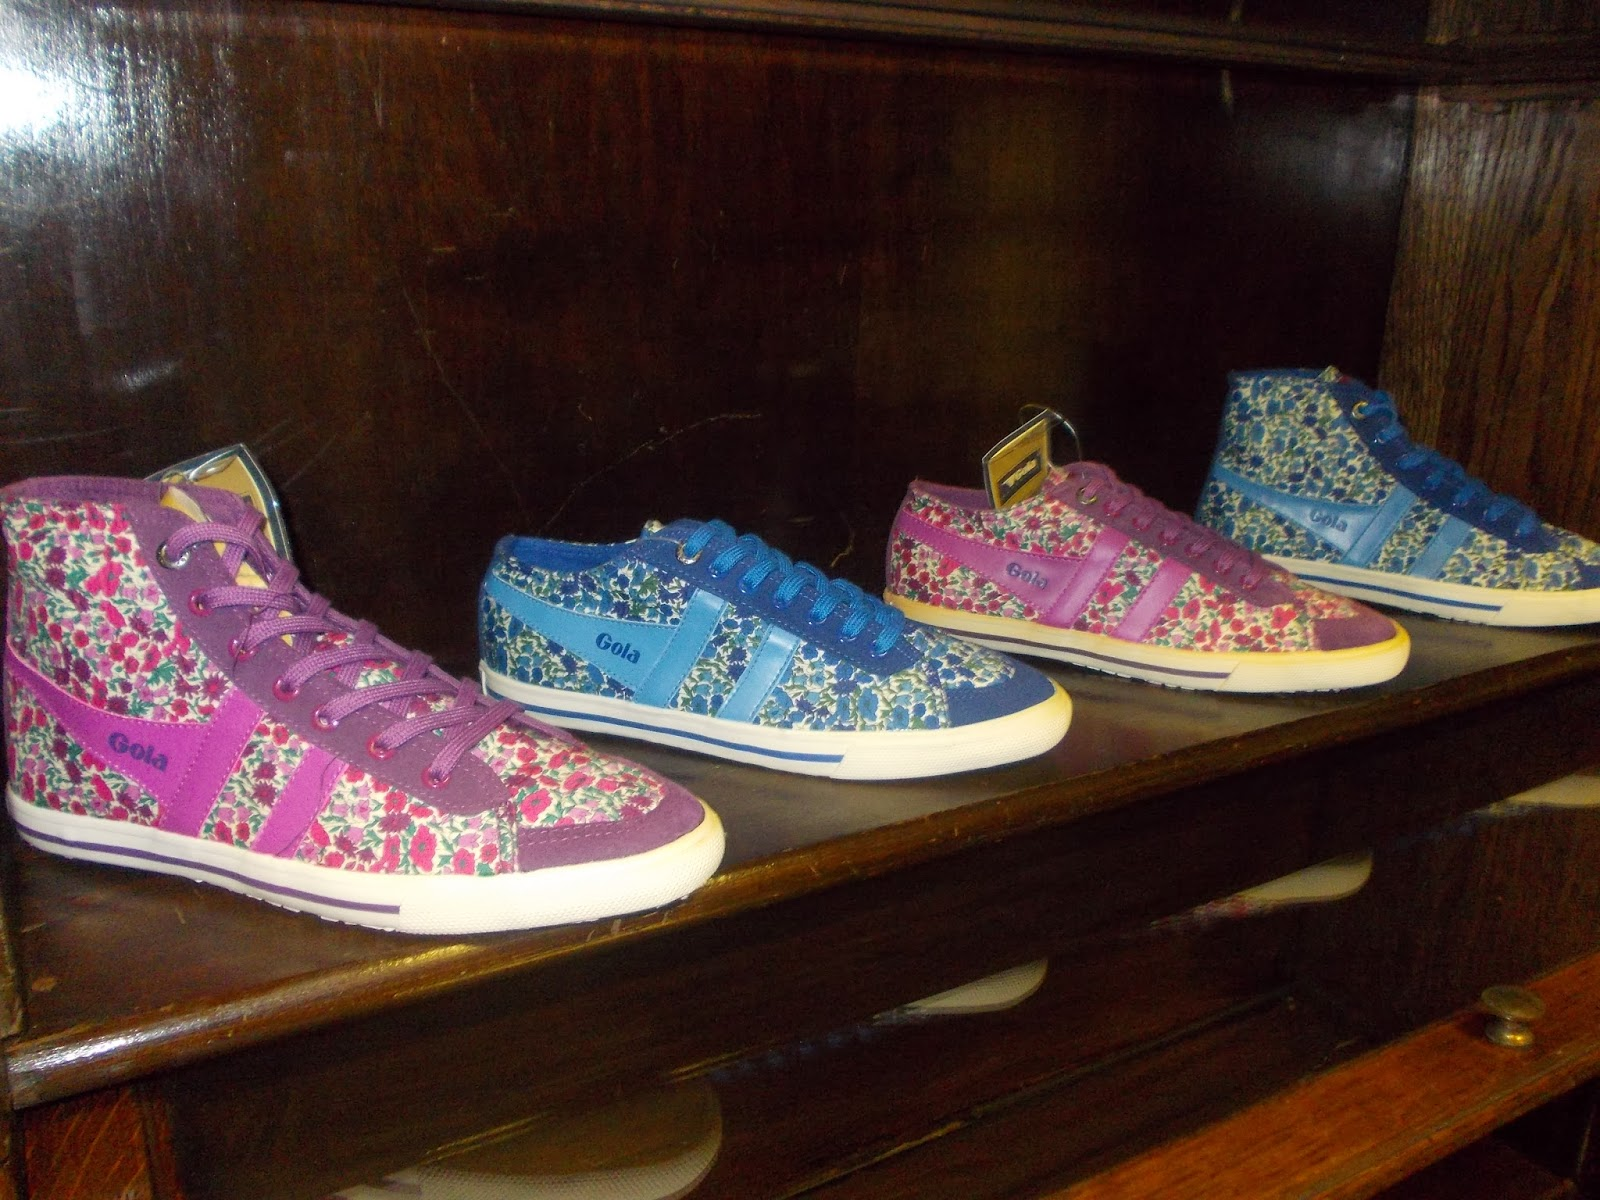 Liberty fabric and Gola trainers put together to make something unique that  screams